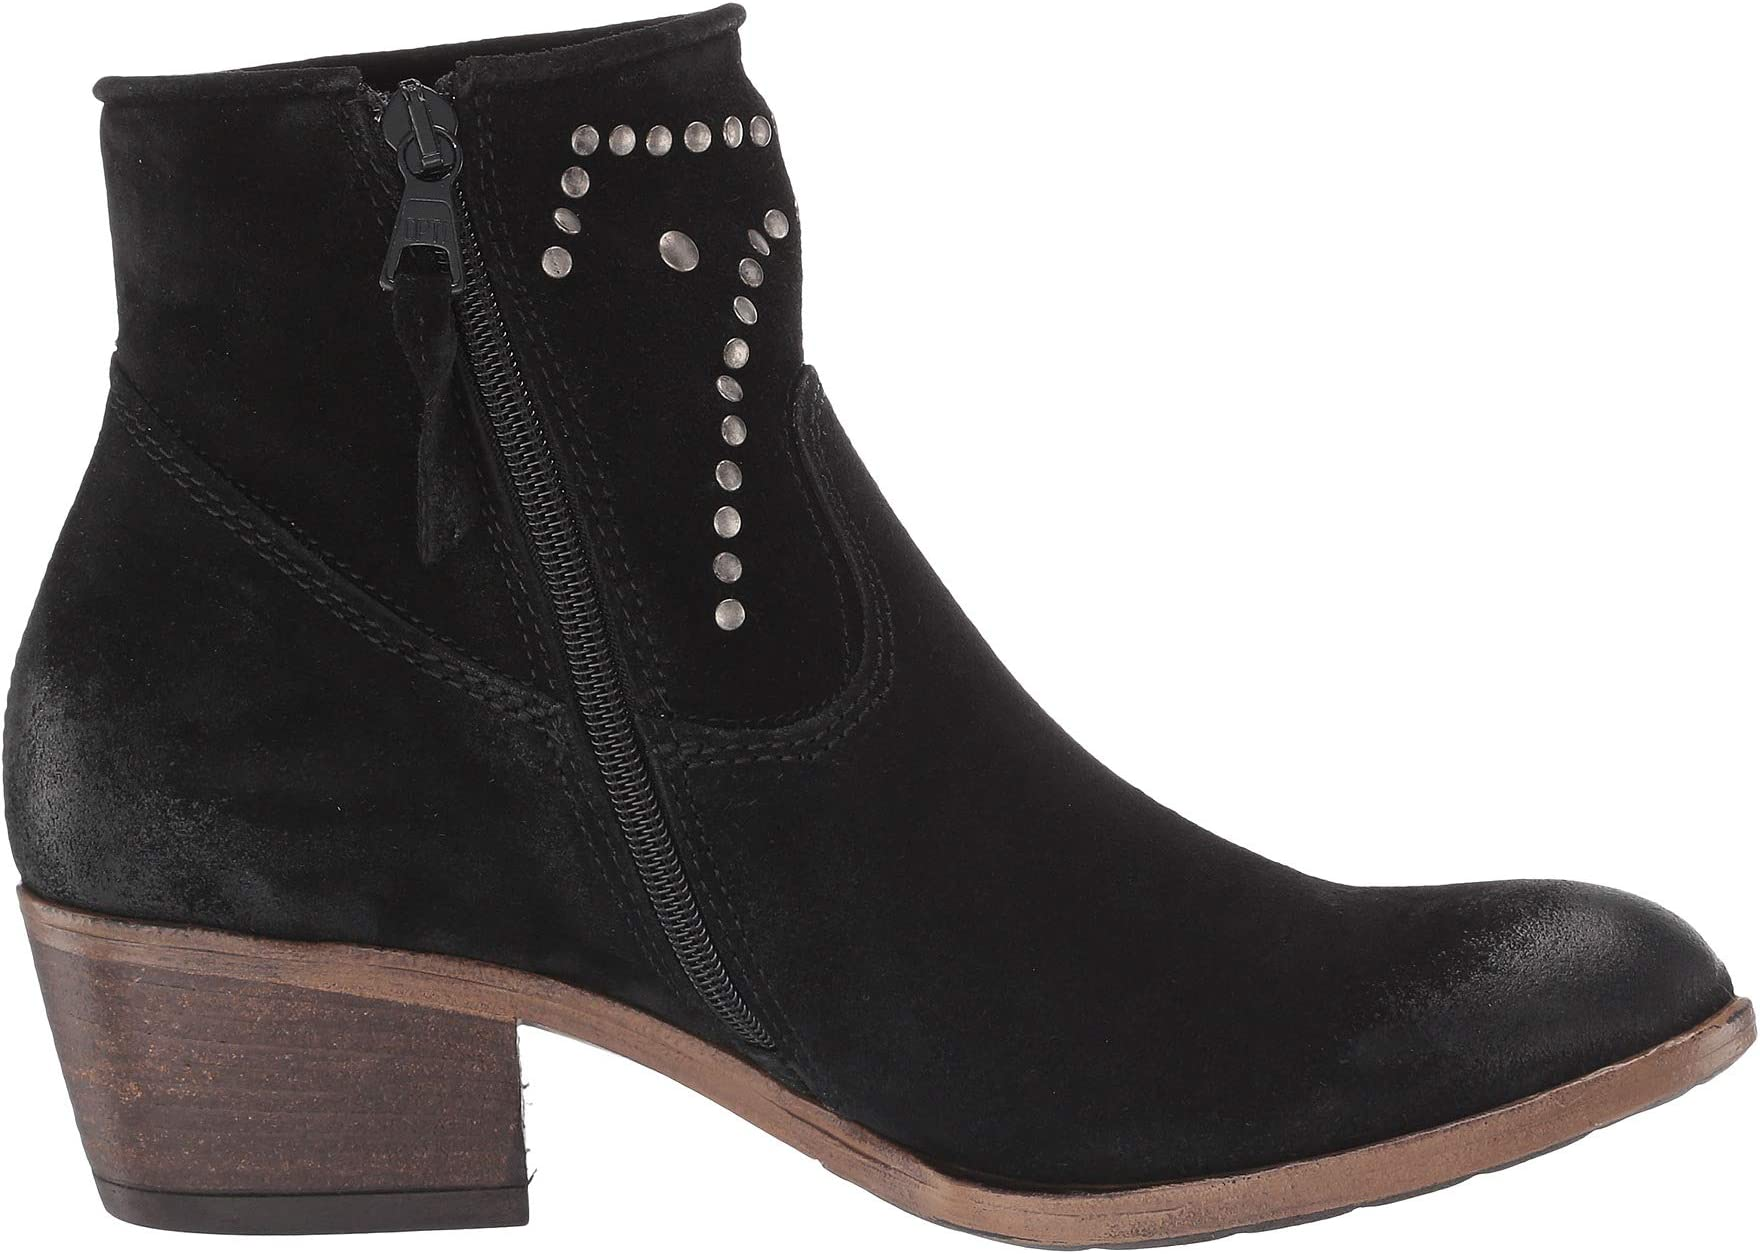 Miz Mooz Dalton | Women's shoes | 2020 Newest